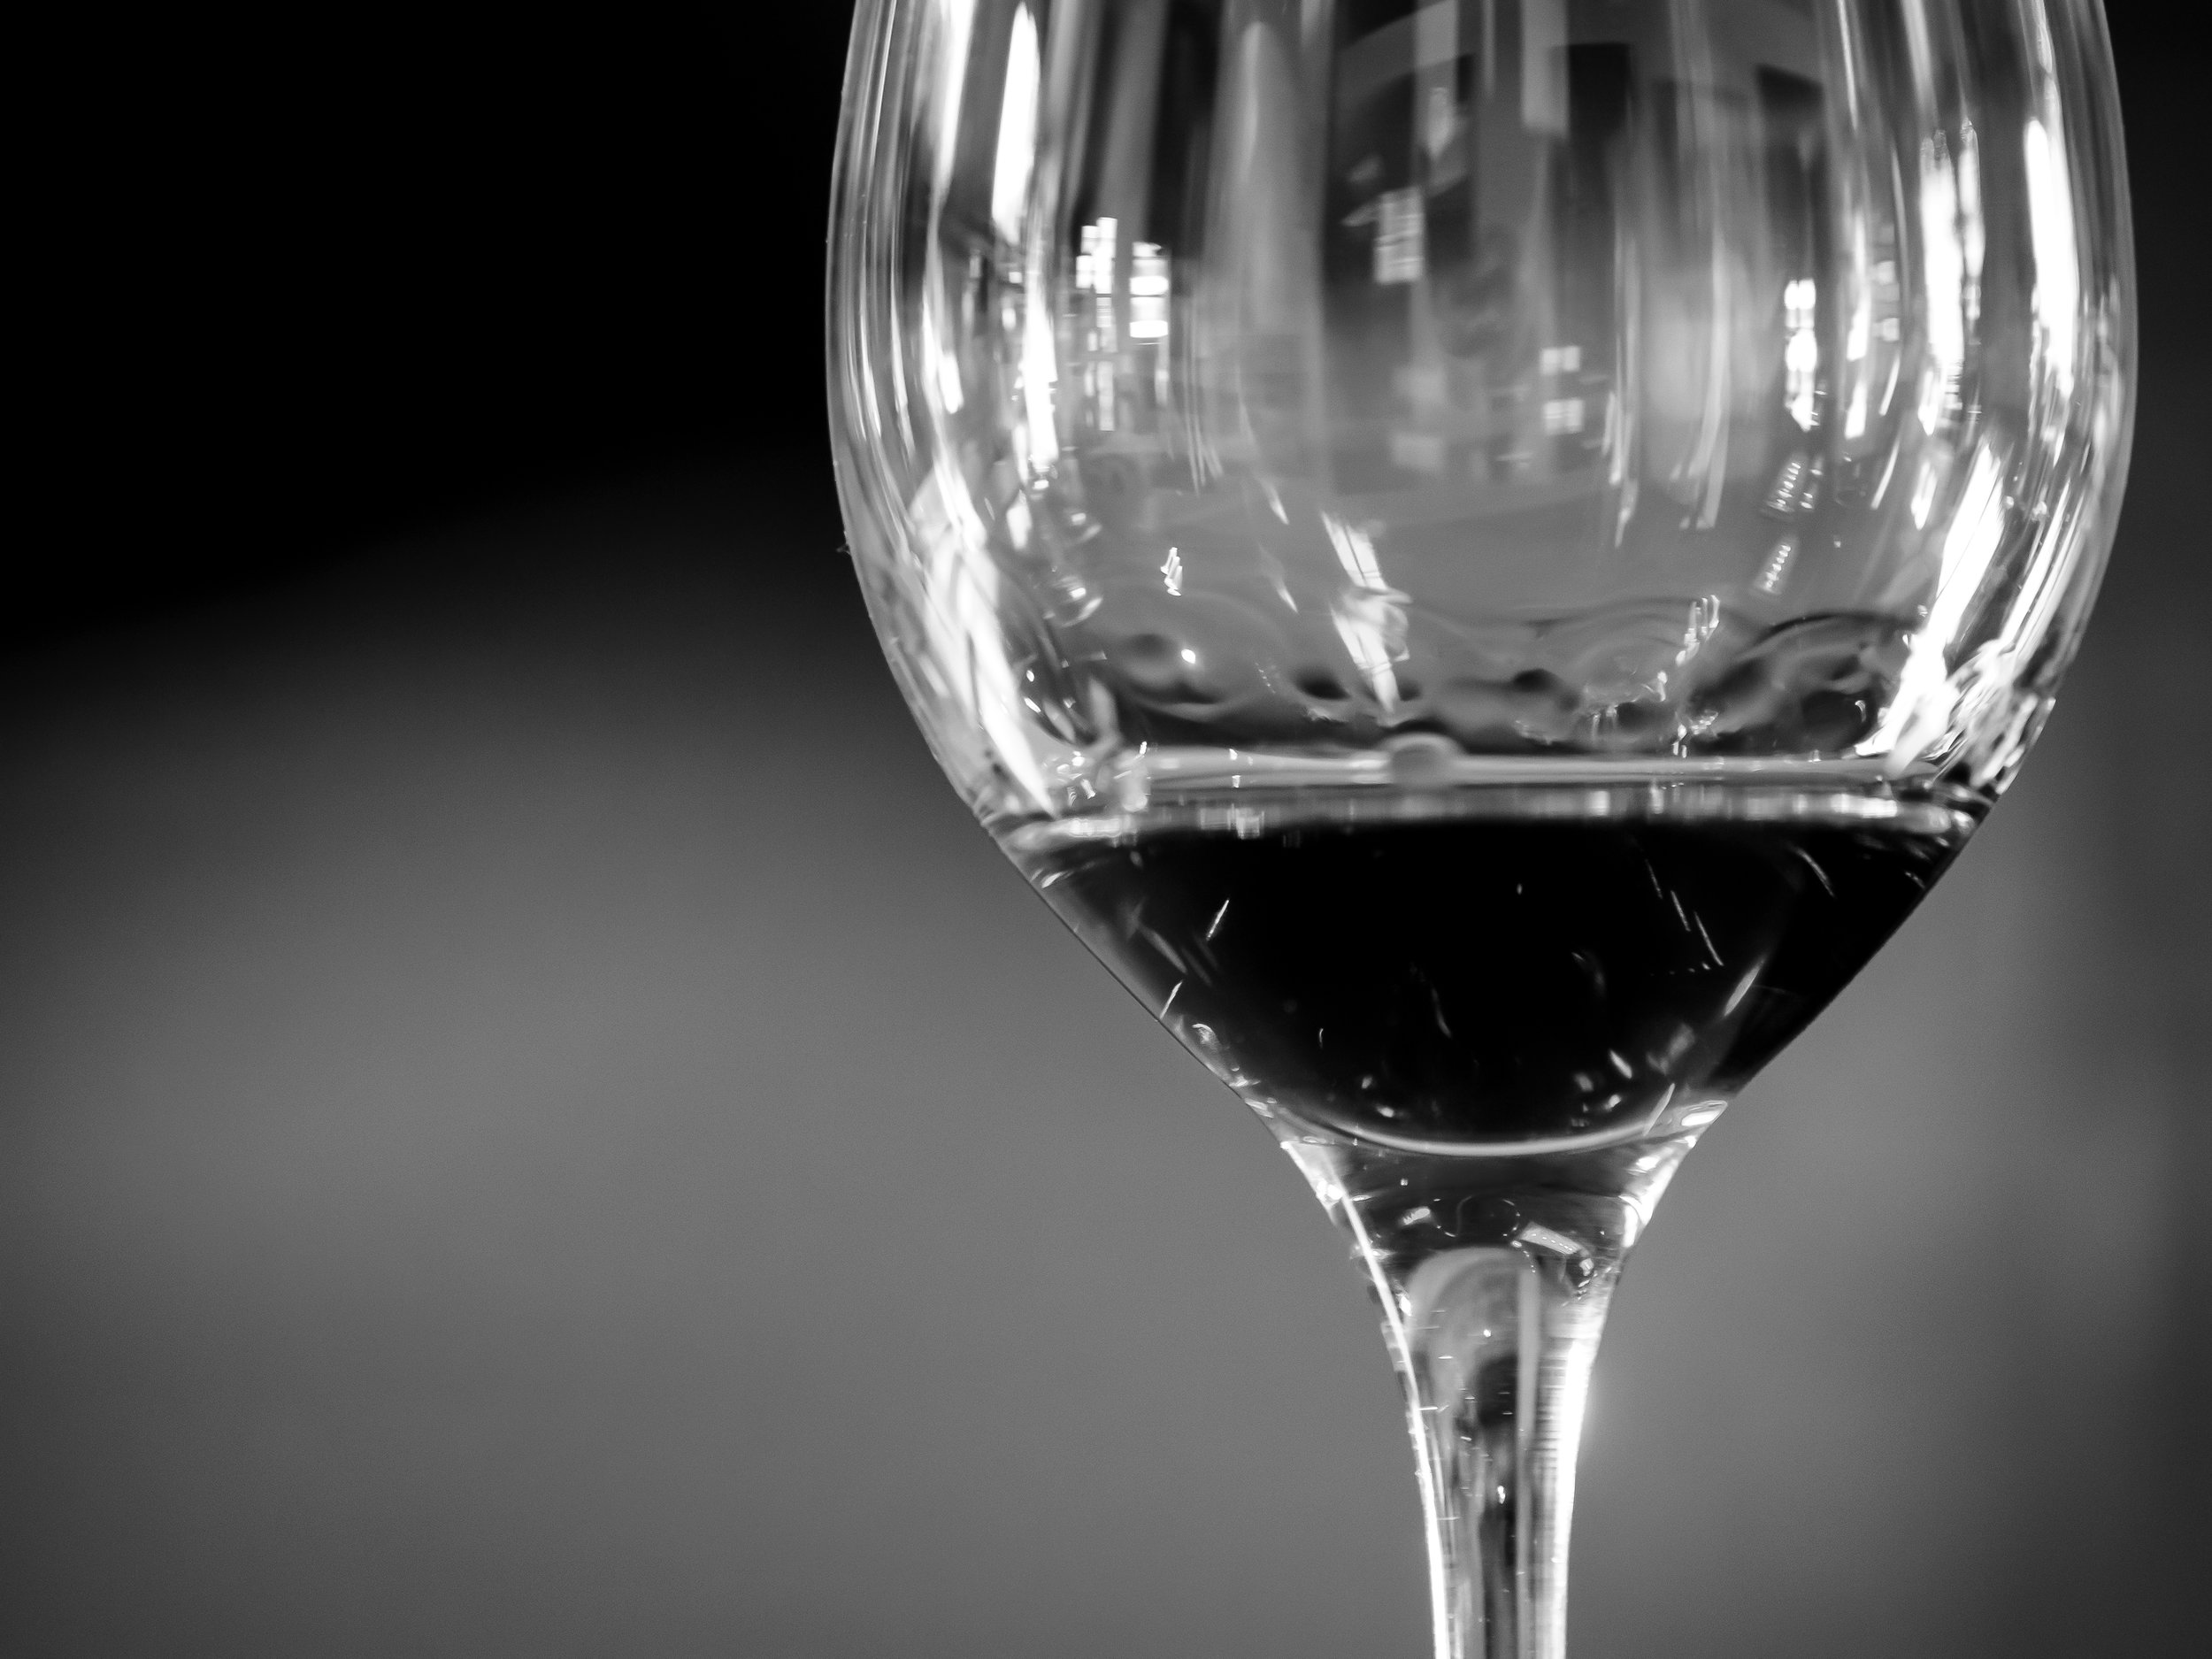 Musings by the Glass - Vinous Deduction Theorem - Glass